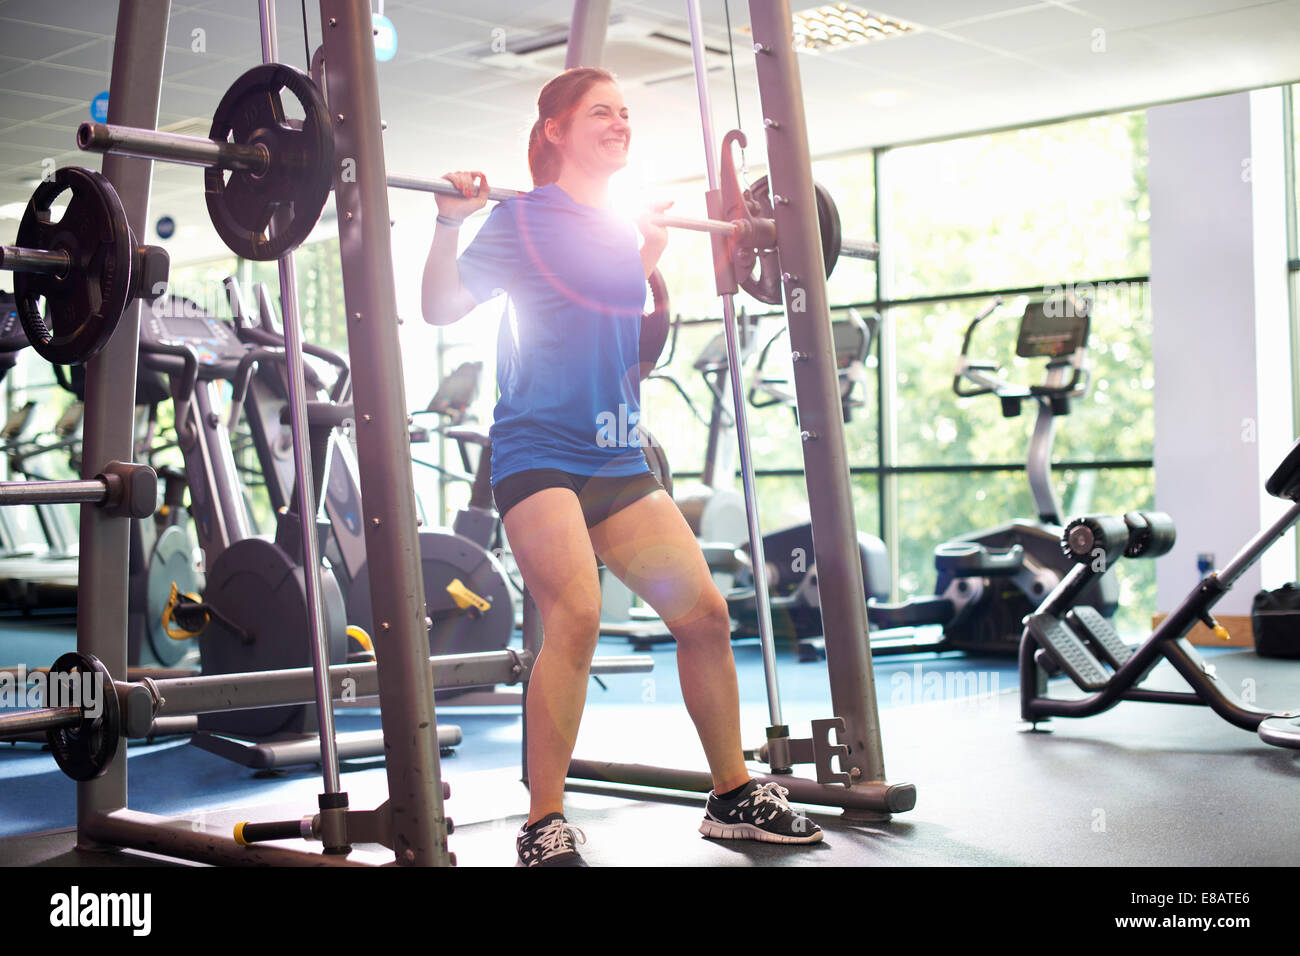 Young woman weight lifting with barbell - Stock Image